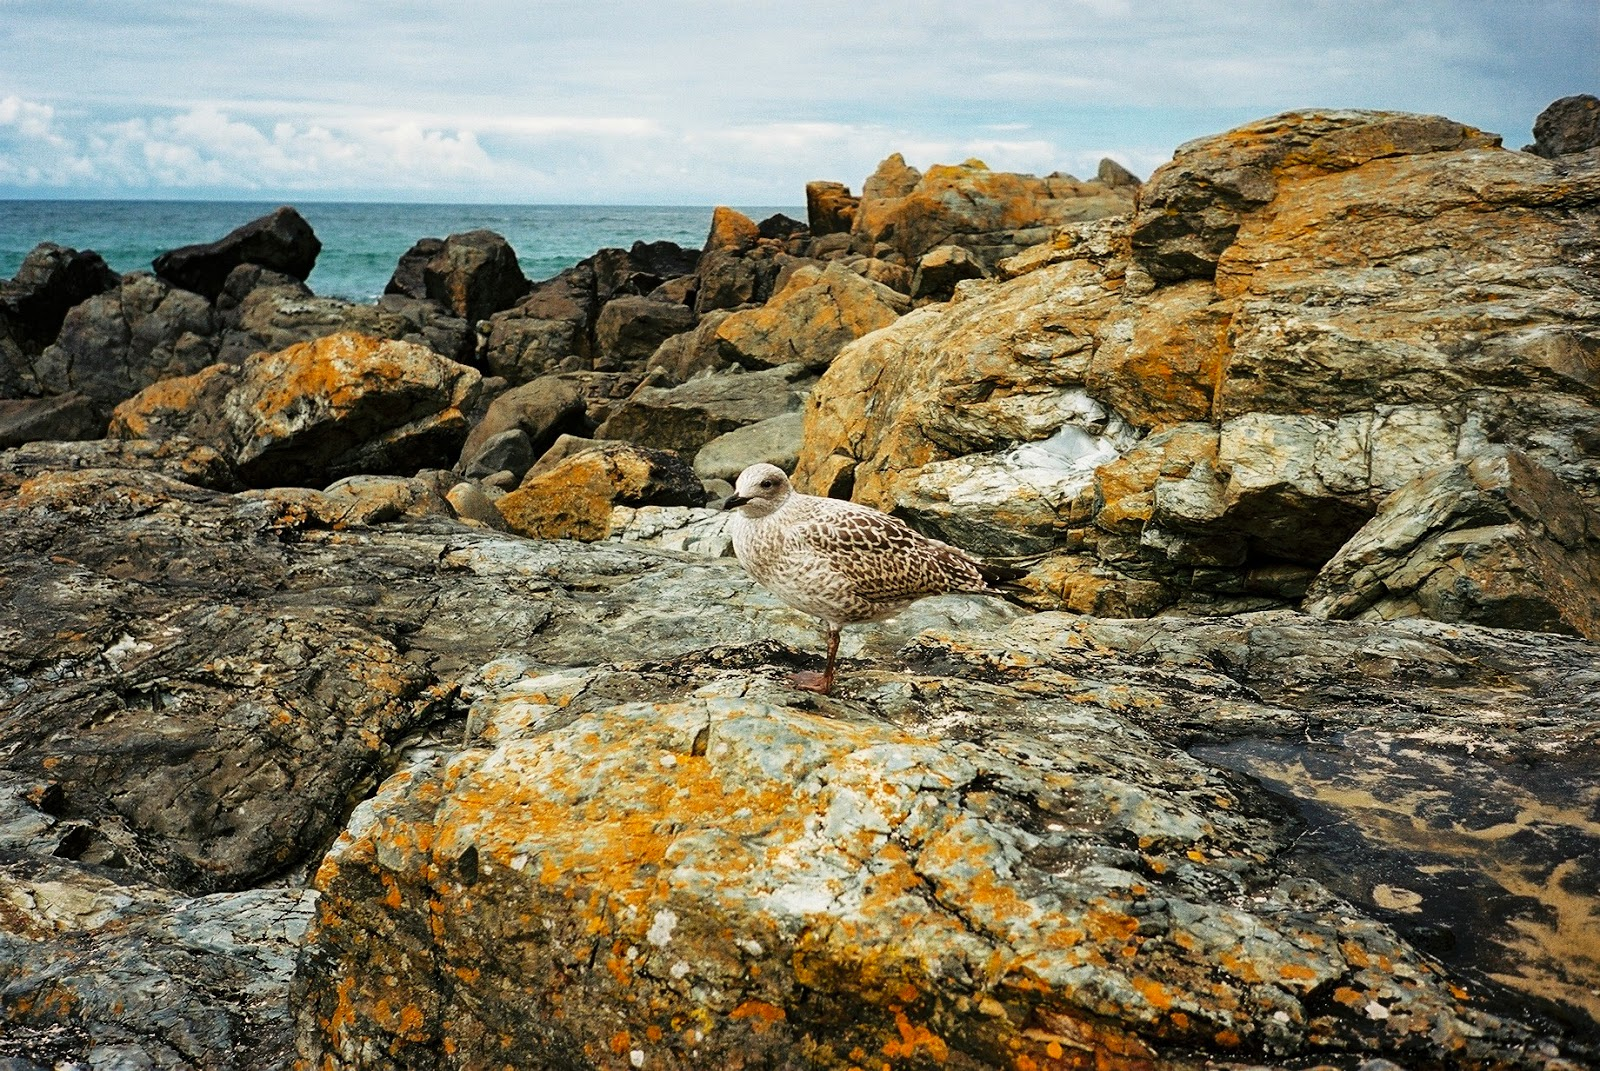 SEAGULL, TEENGULL, CAMOUFLAGED BIRD, ST IVES, CORNWALL, PORTHWIDGEN BEACH, PROTECTED SPECIES, FLY BY SEAGULL MUGGINGS, © VAC 100 DAYS 4 MILLION CONVERSATIONS, 2015 GENERAL ELECTION